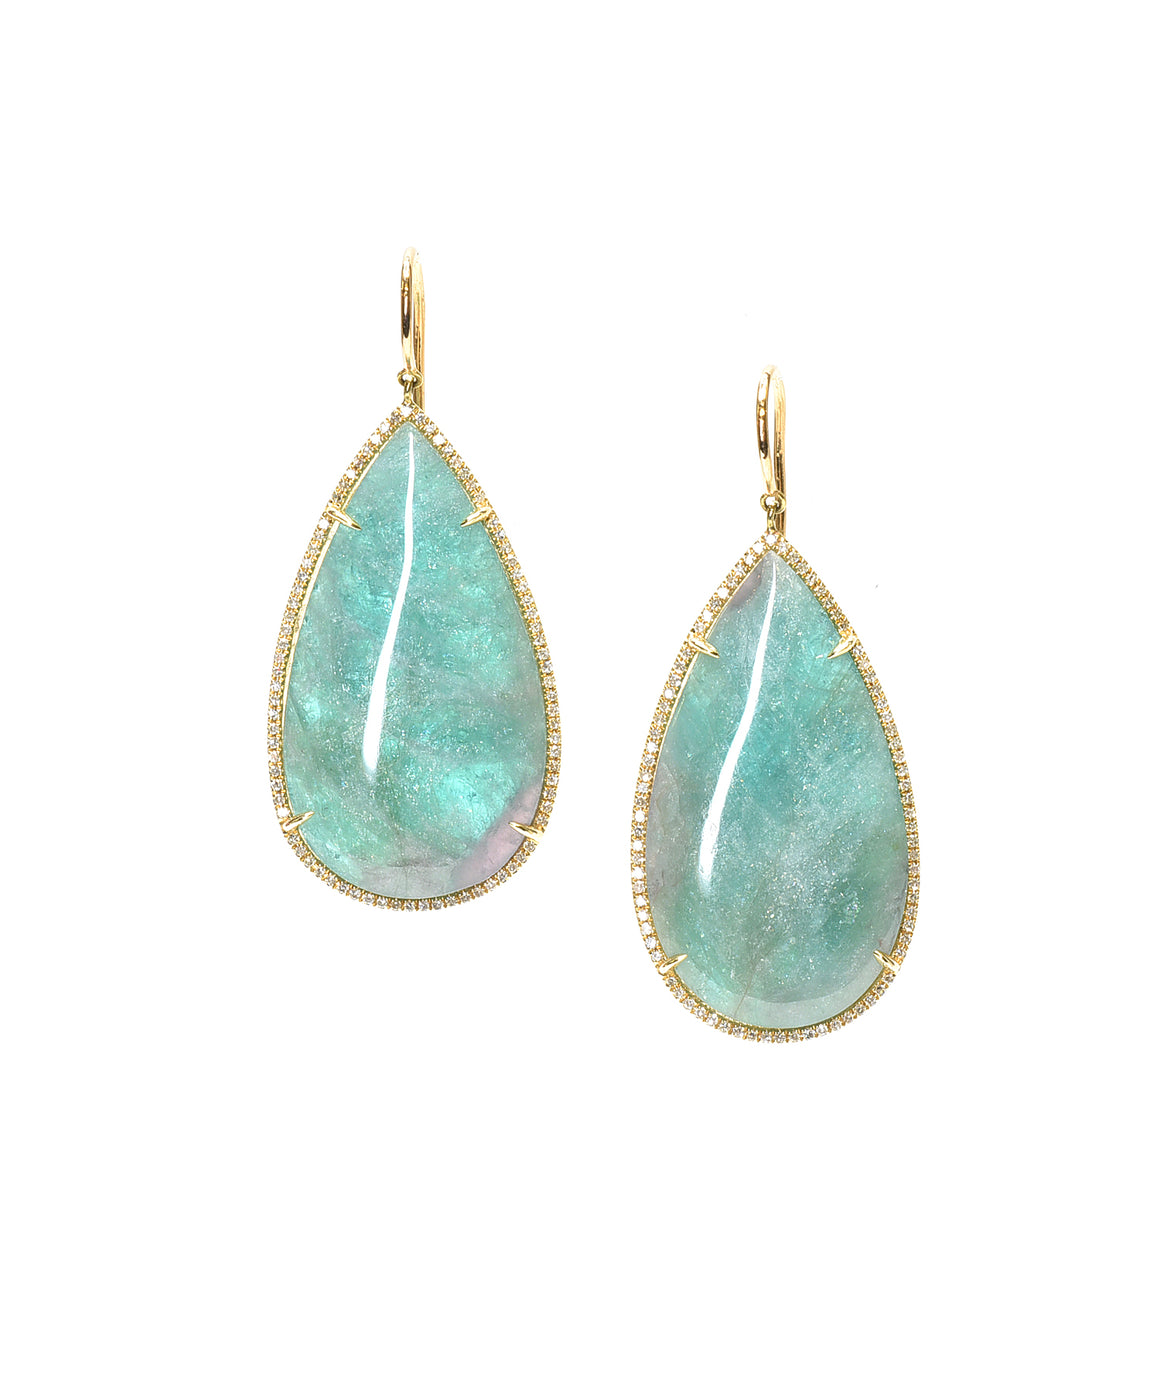 Paraiba Tourmaline Earrings - Lesley Ann Jewels